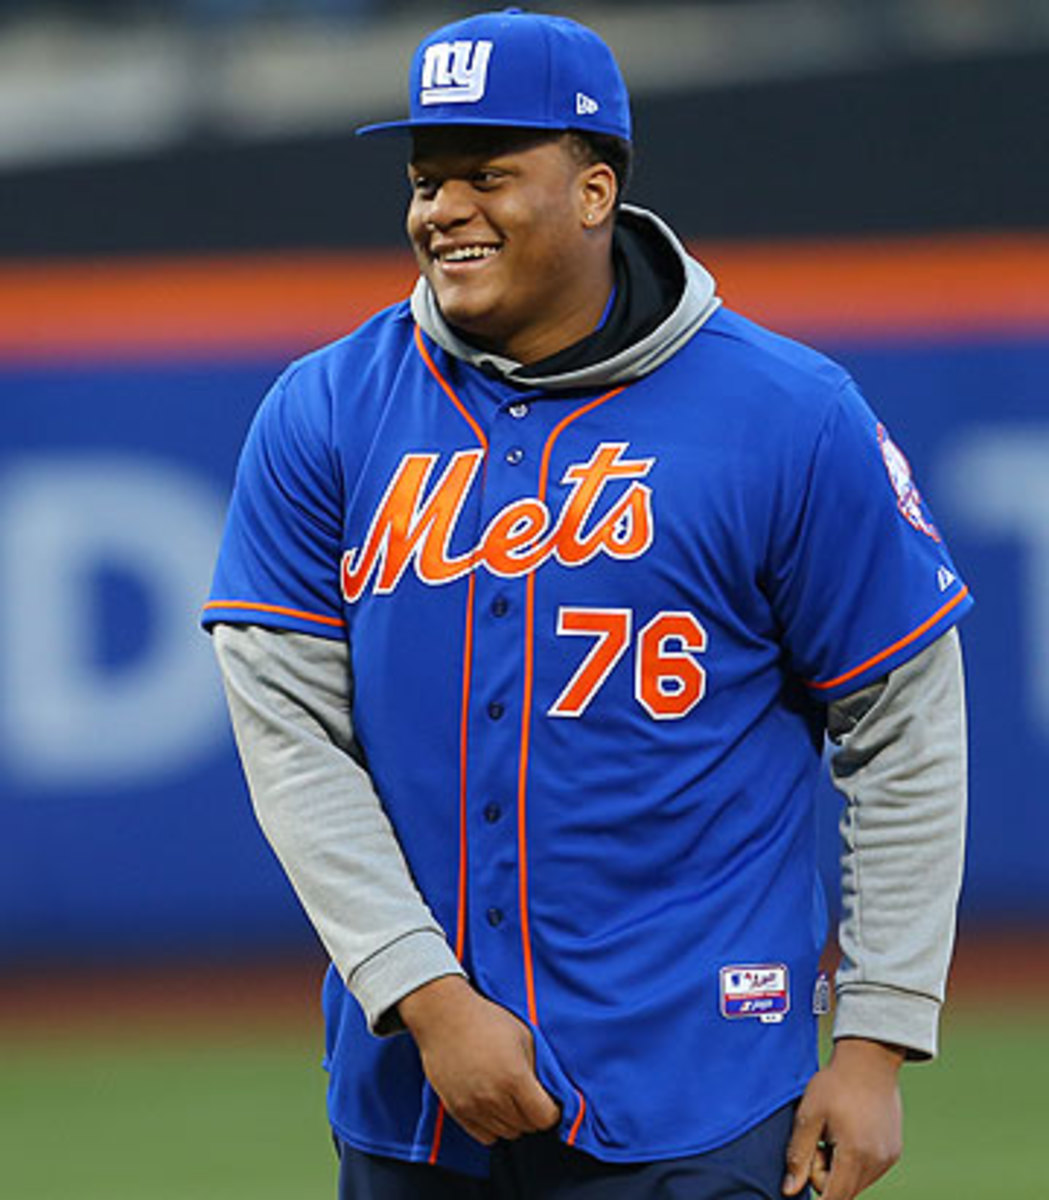 One day after being picked by the Giants, Ereck Flowers threw out the first pitch at the Mets-Nationals game. (Adam Hunger/AP)